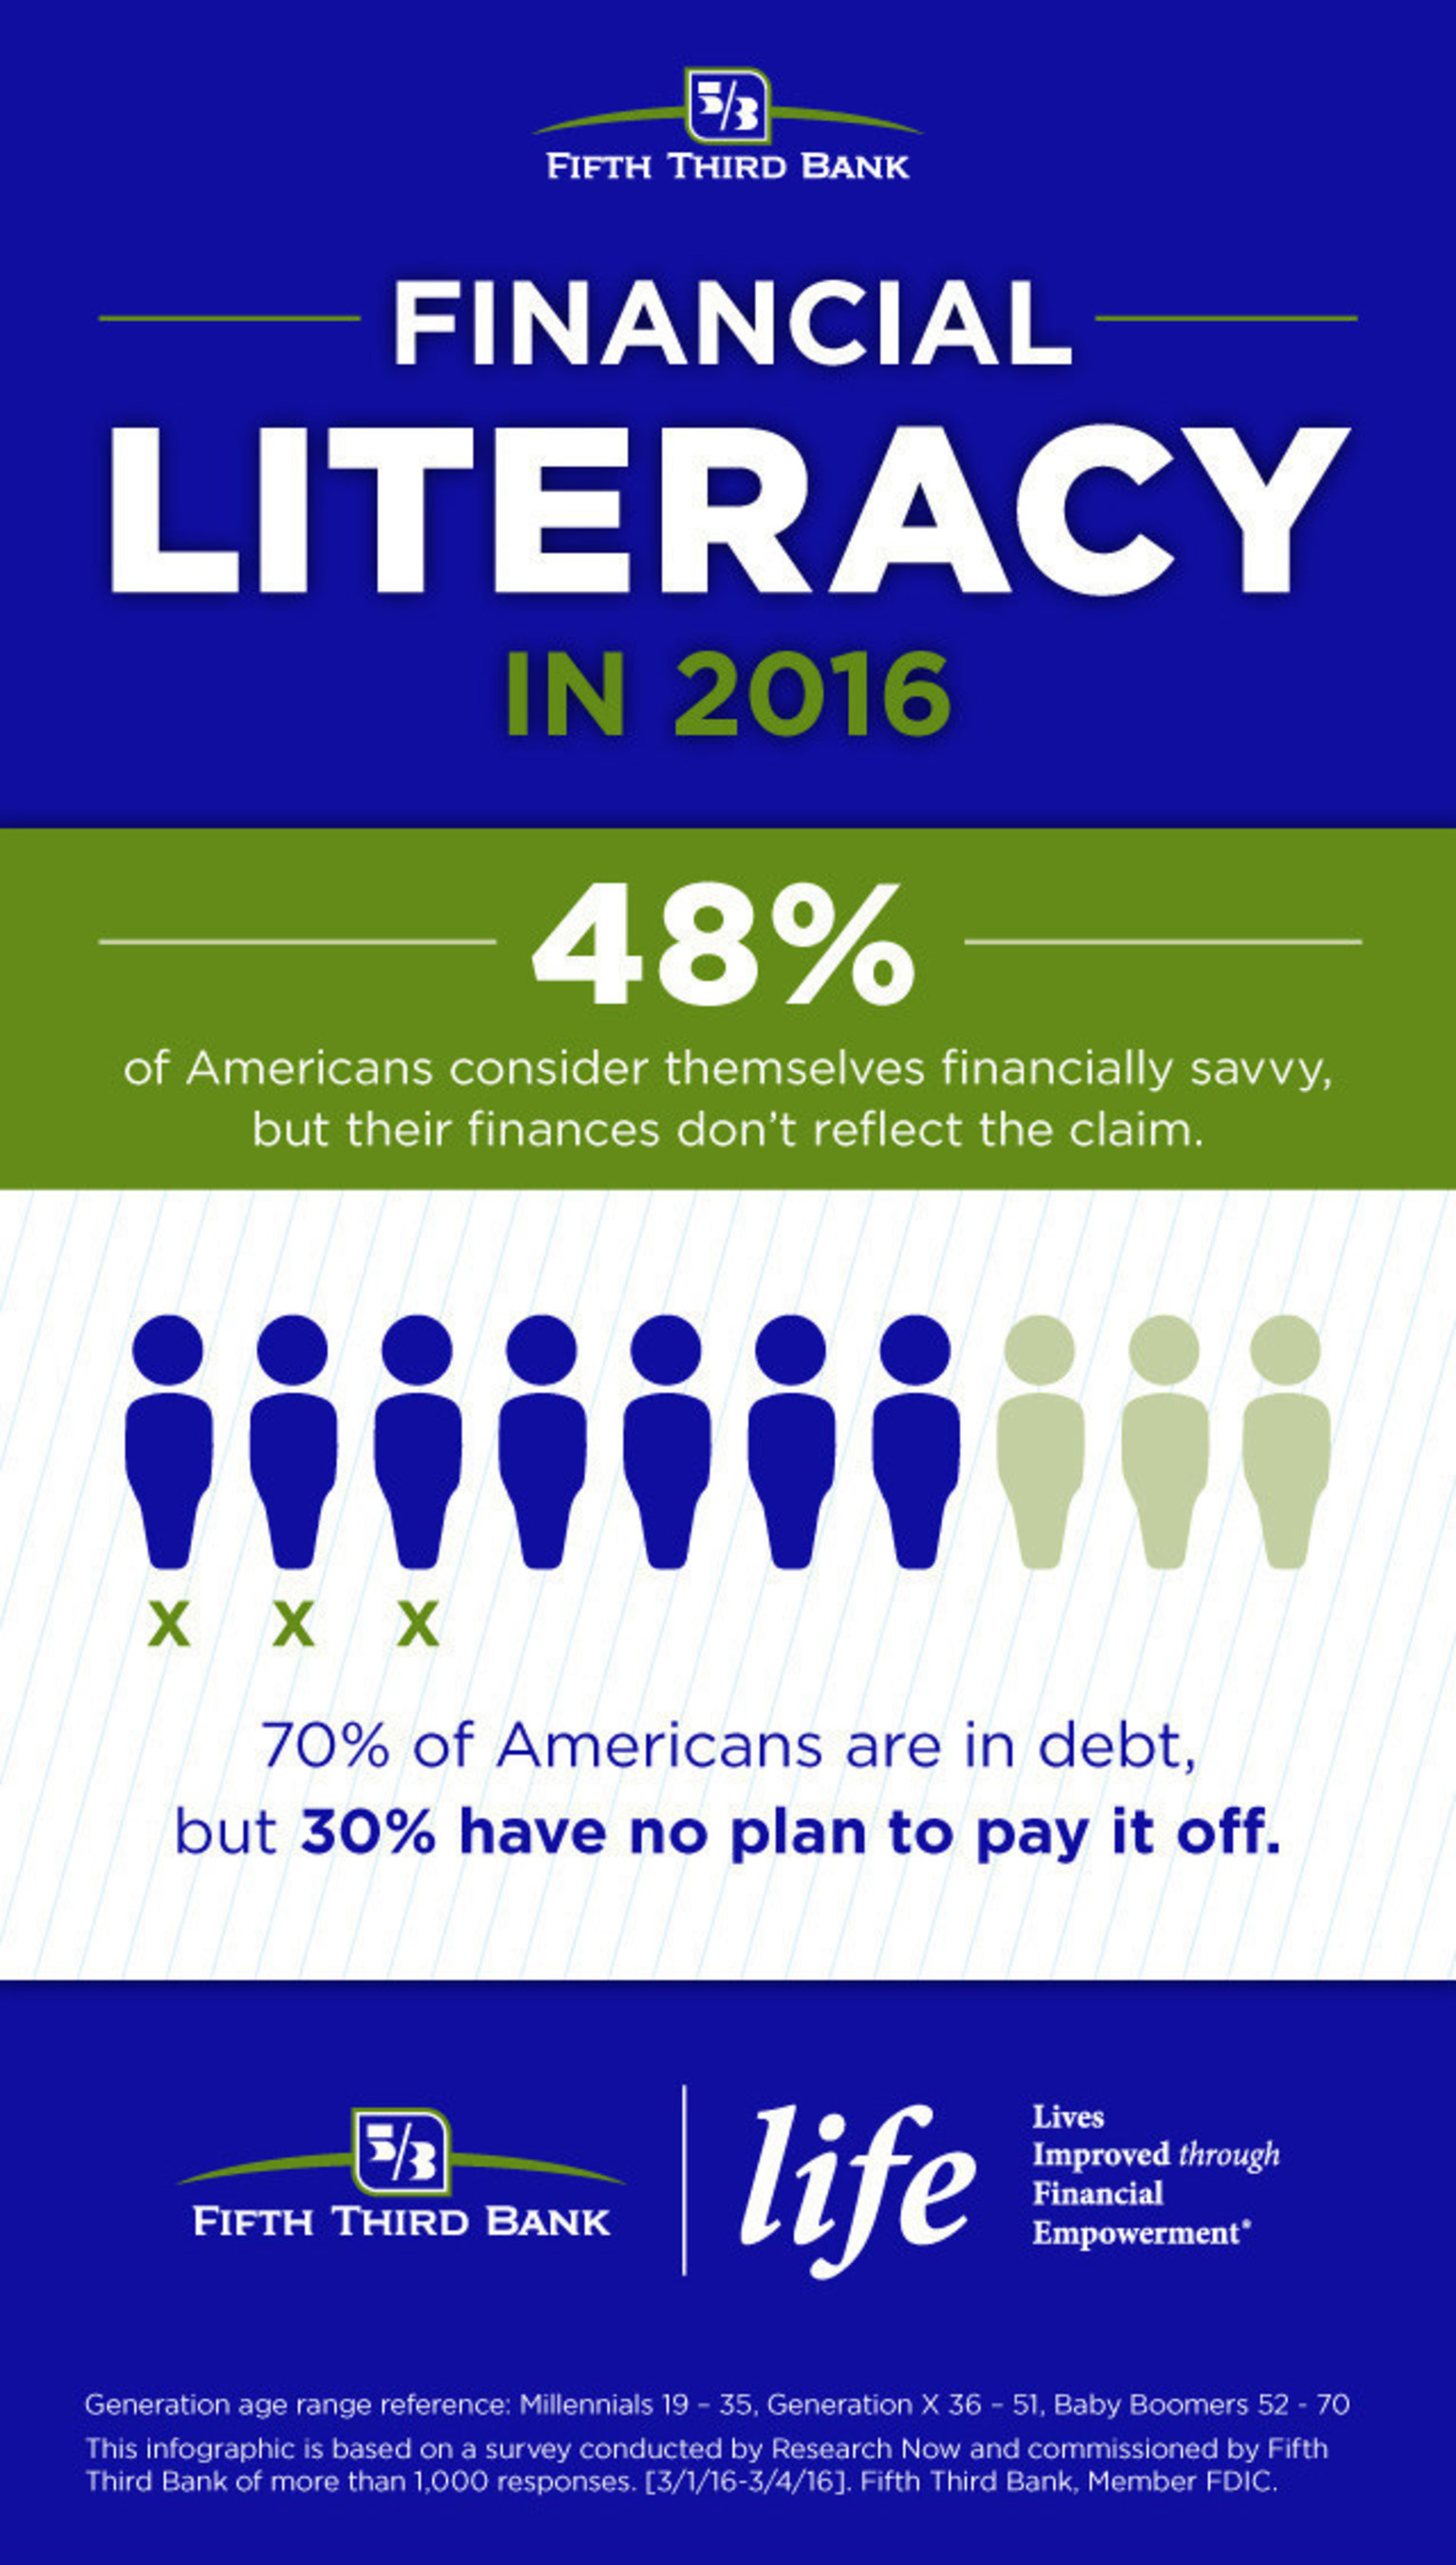 Nearly half of Americans consider themselves financially savvy, but their finances don't reflect the claim.